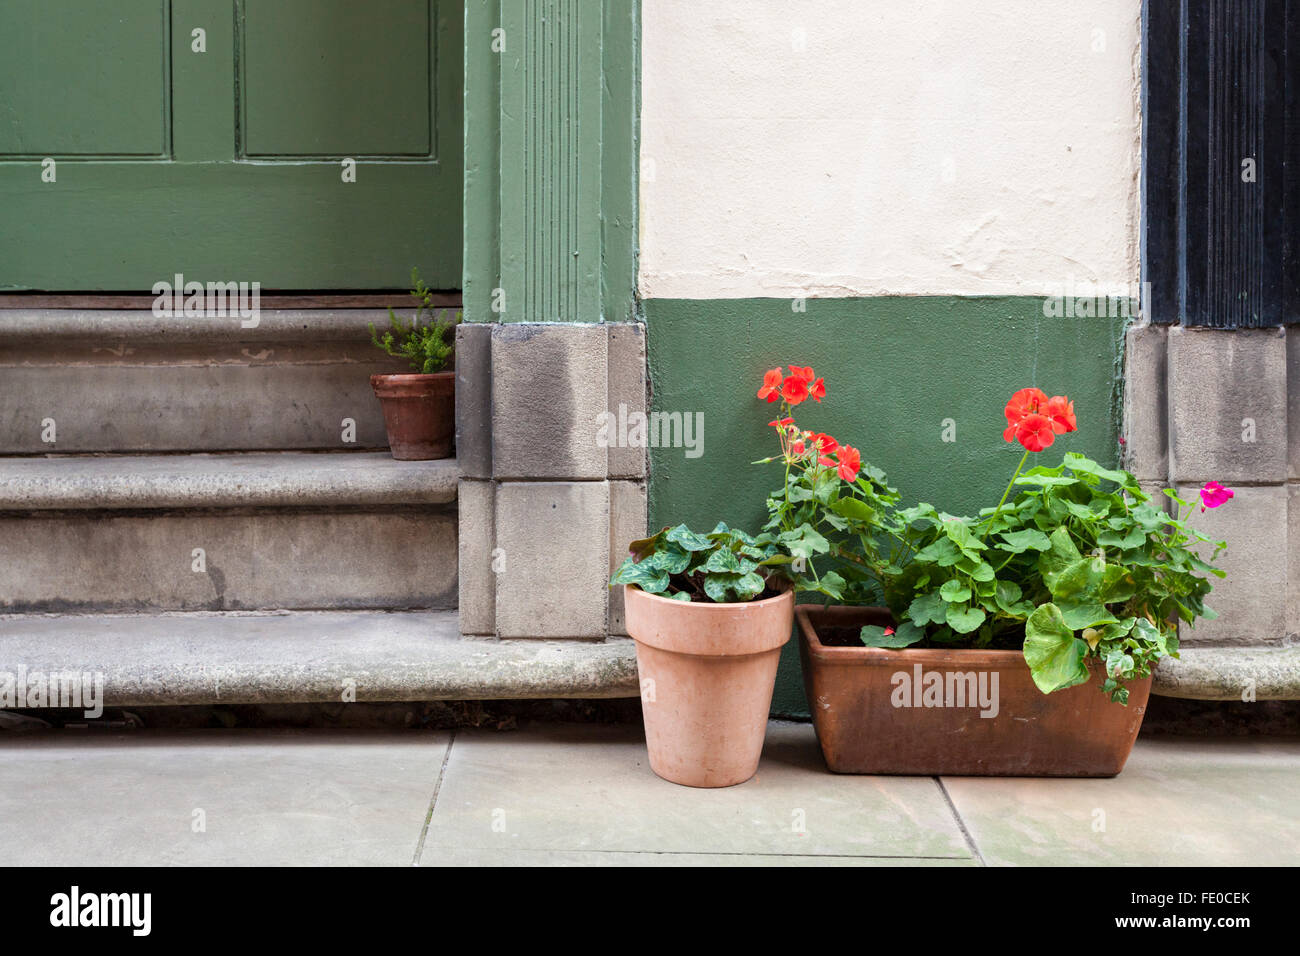 Pot plants on the pavement and in a doorway, Nottingham, England, UK - Stock Image